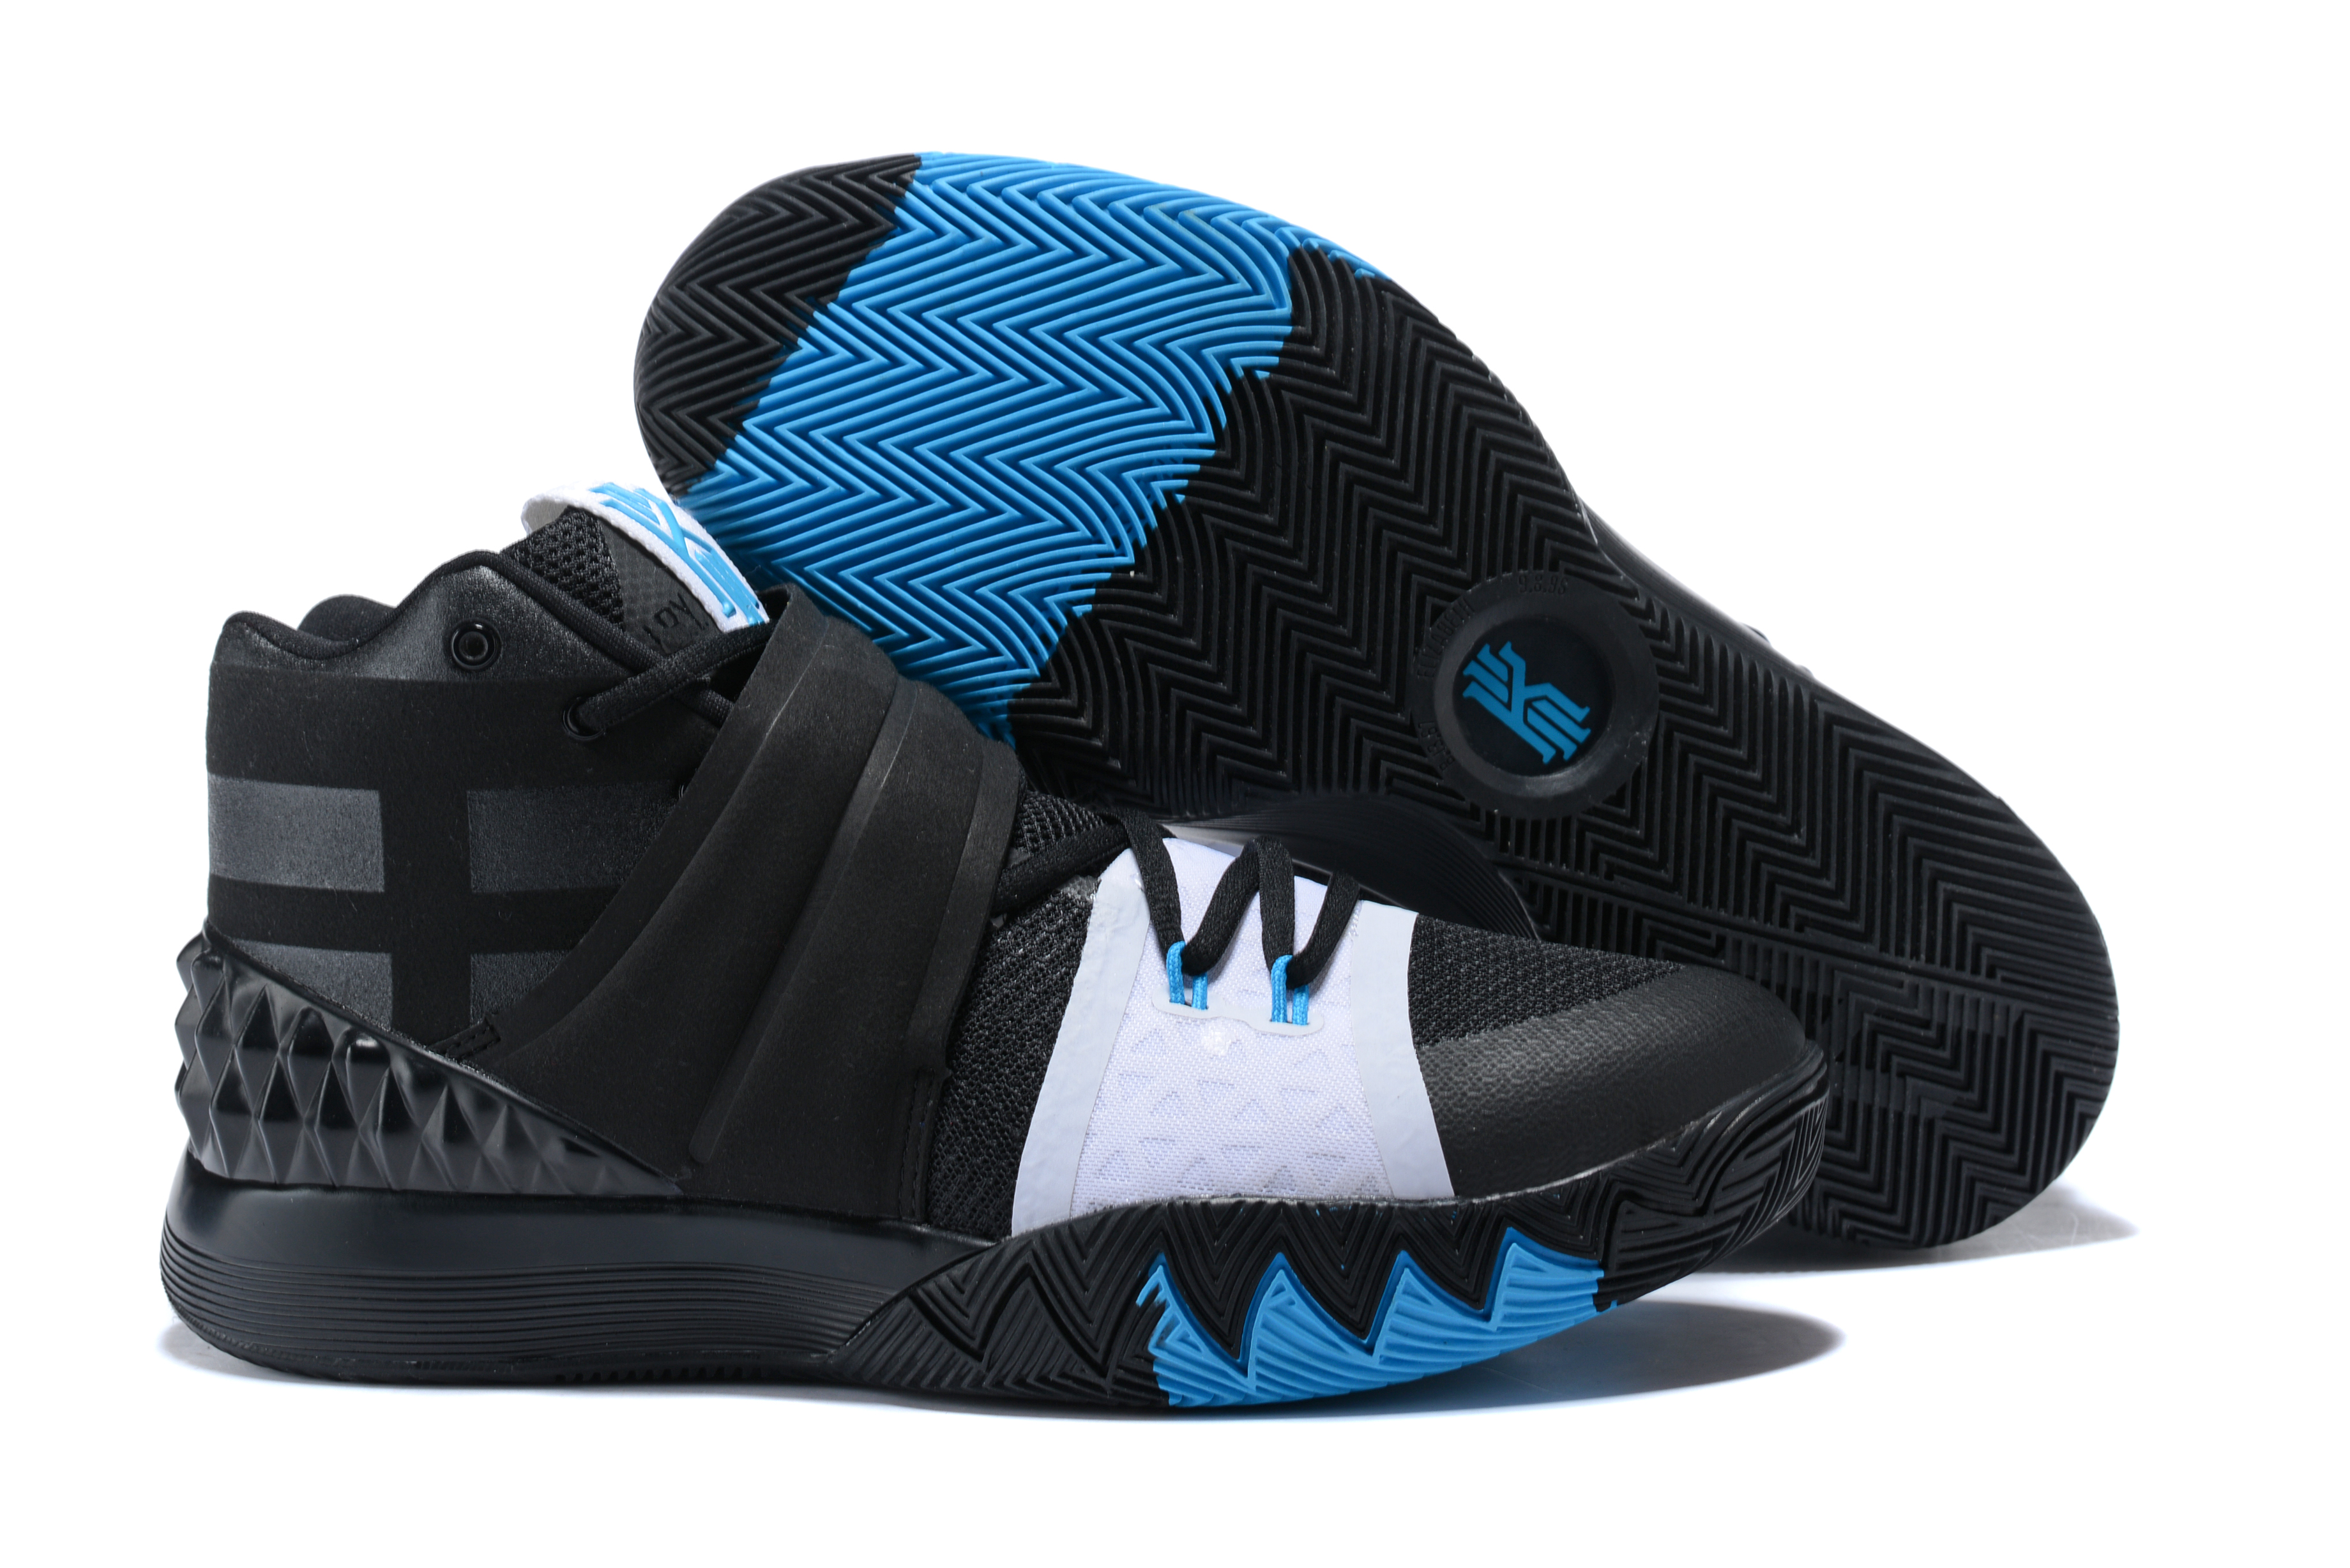 Nike Kyrie S1HYBRID Black White Blue Shoes